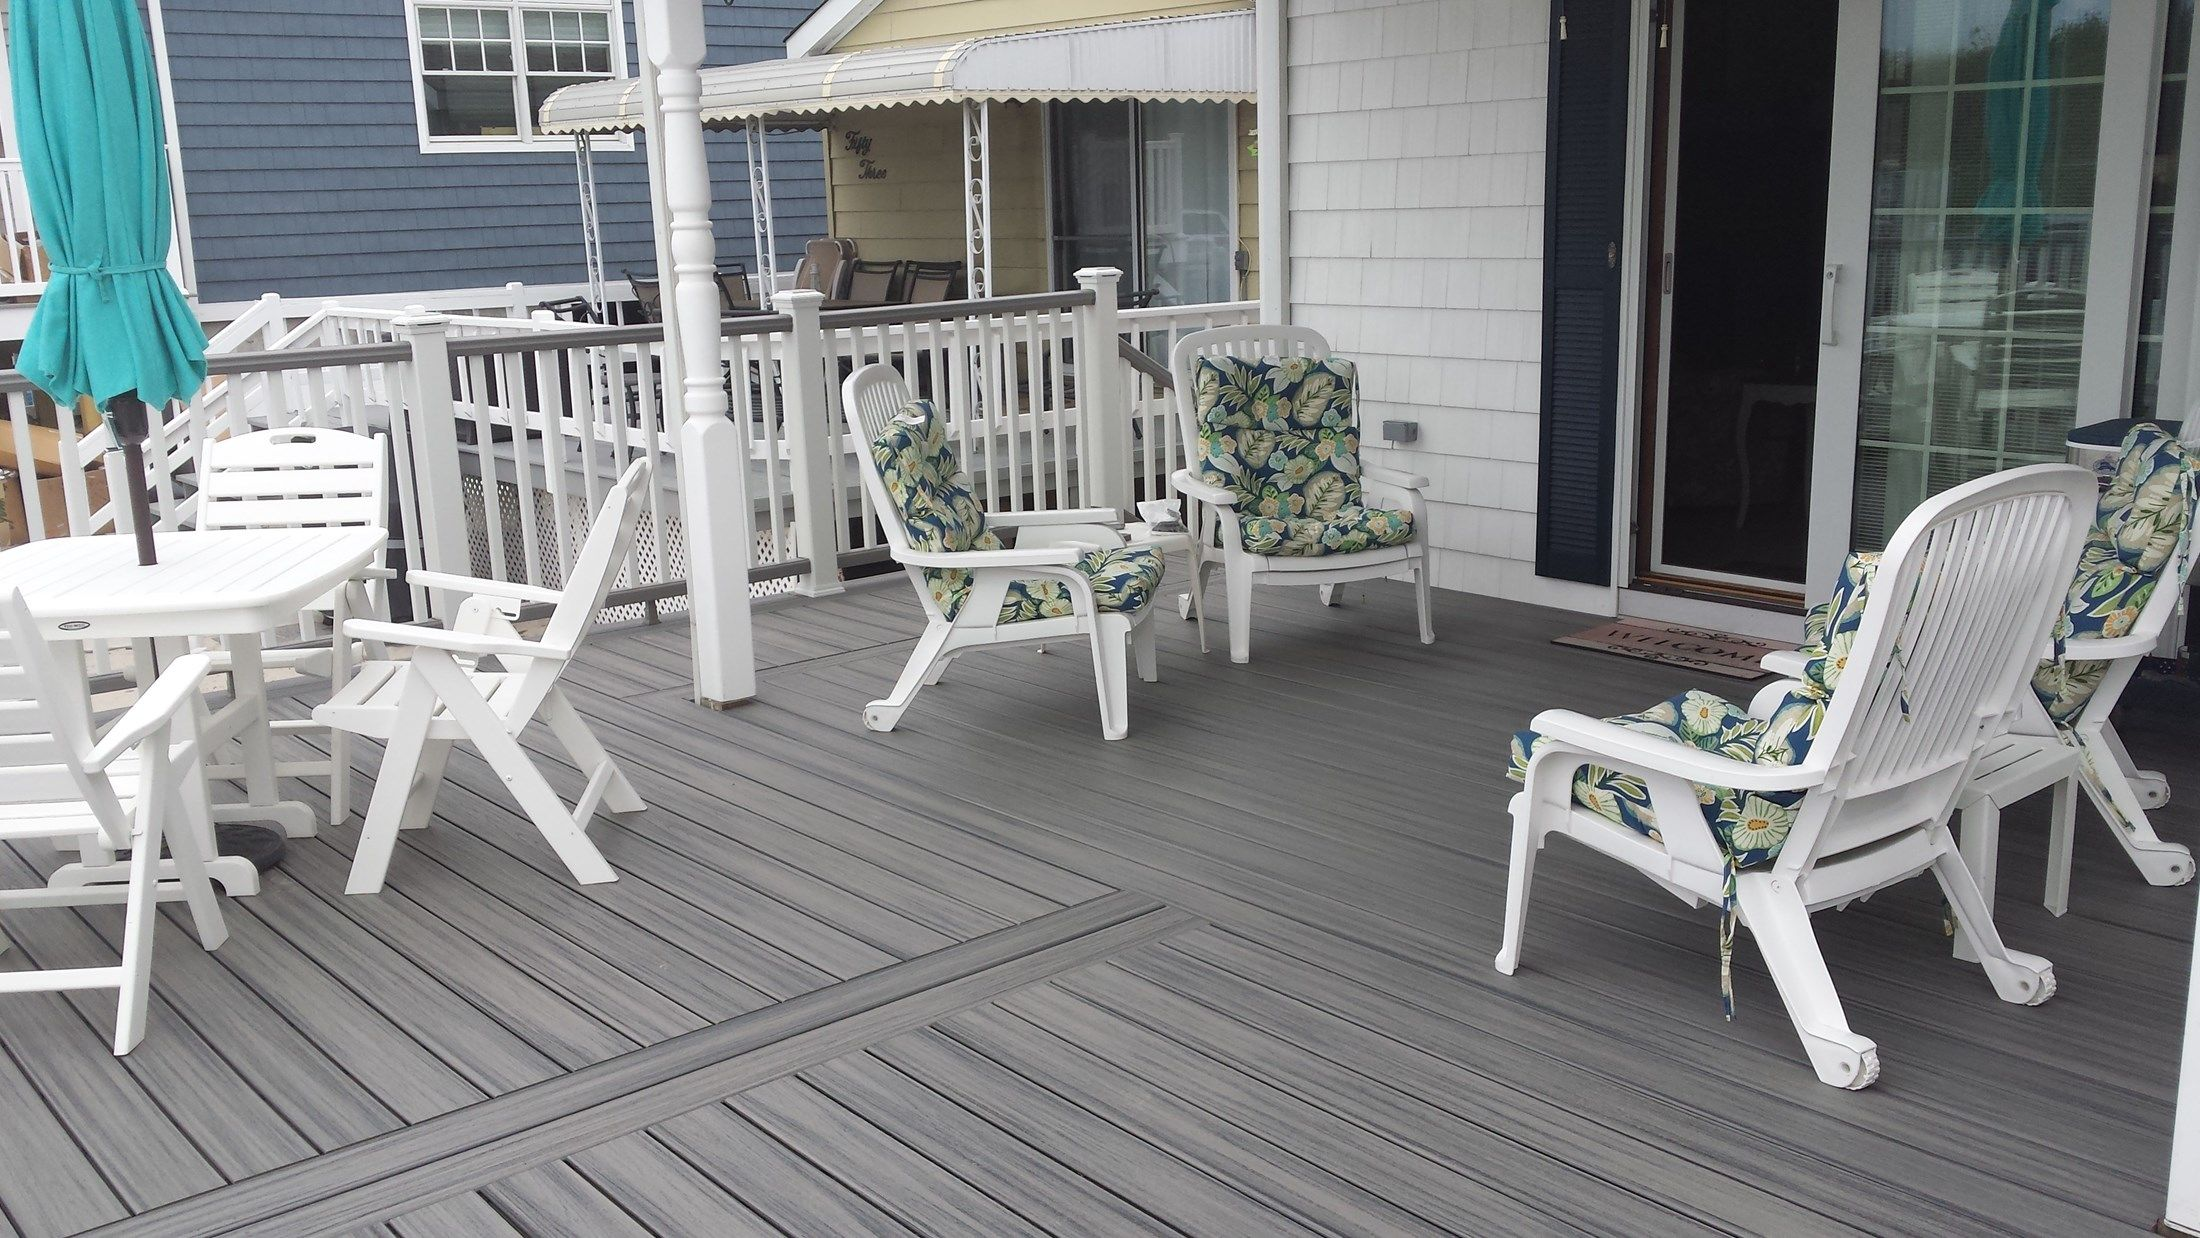 Transcends tropics island mist picture 1824 for Who makes tropics decking